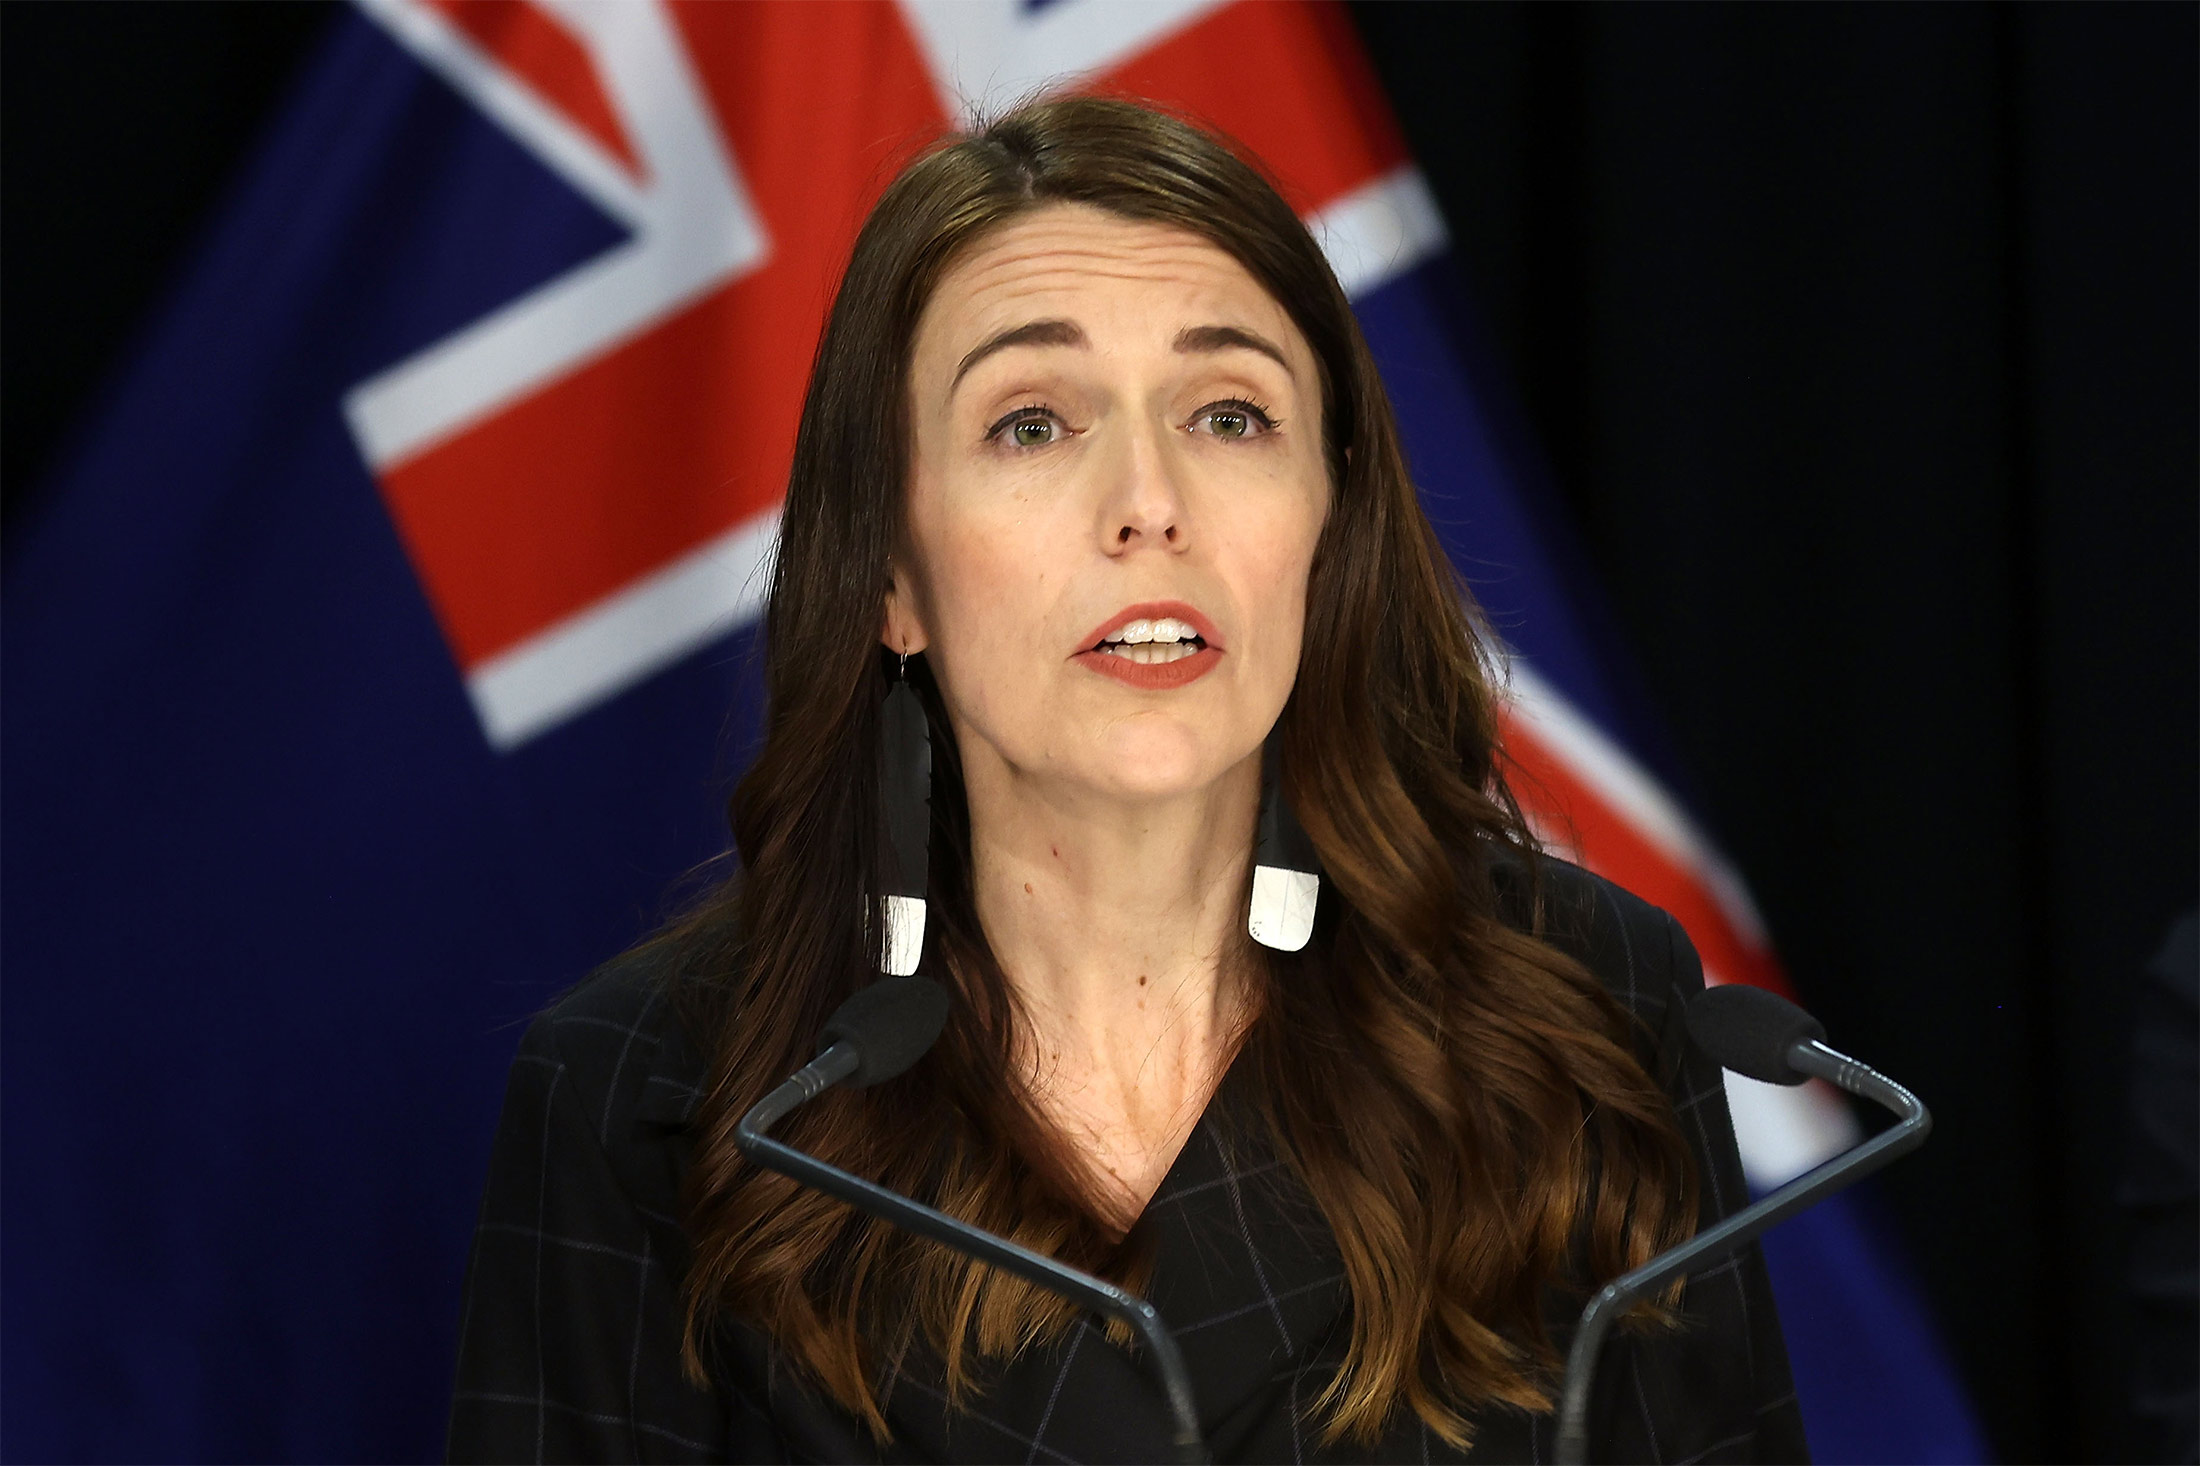 Jacinda Ardern is the Prime Minister of New Zealand